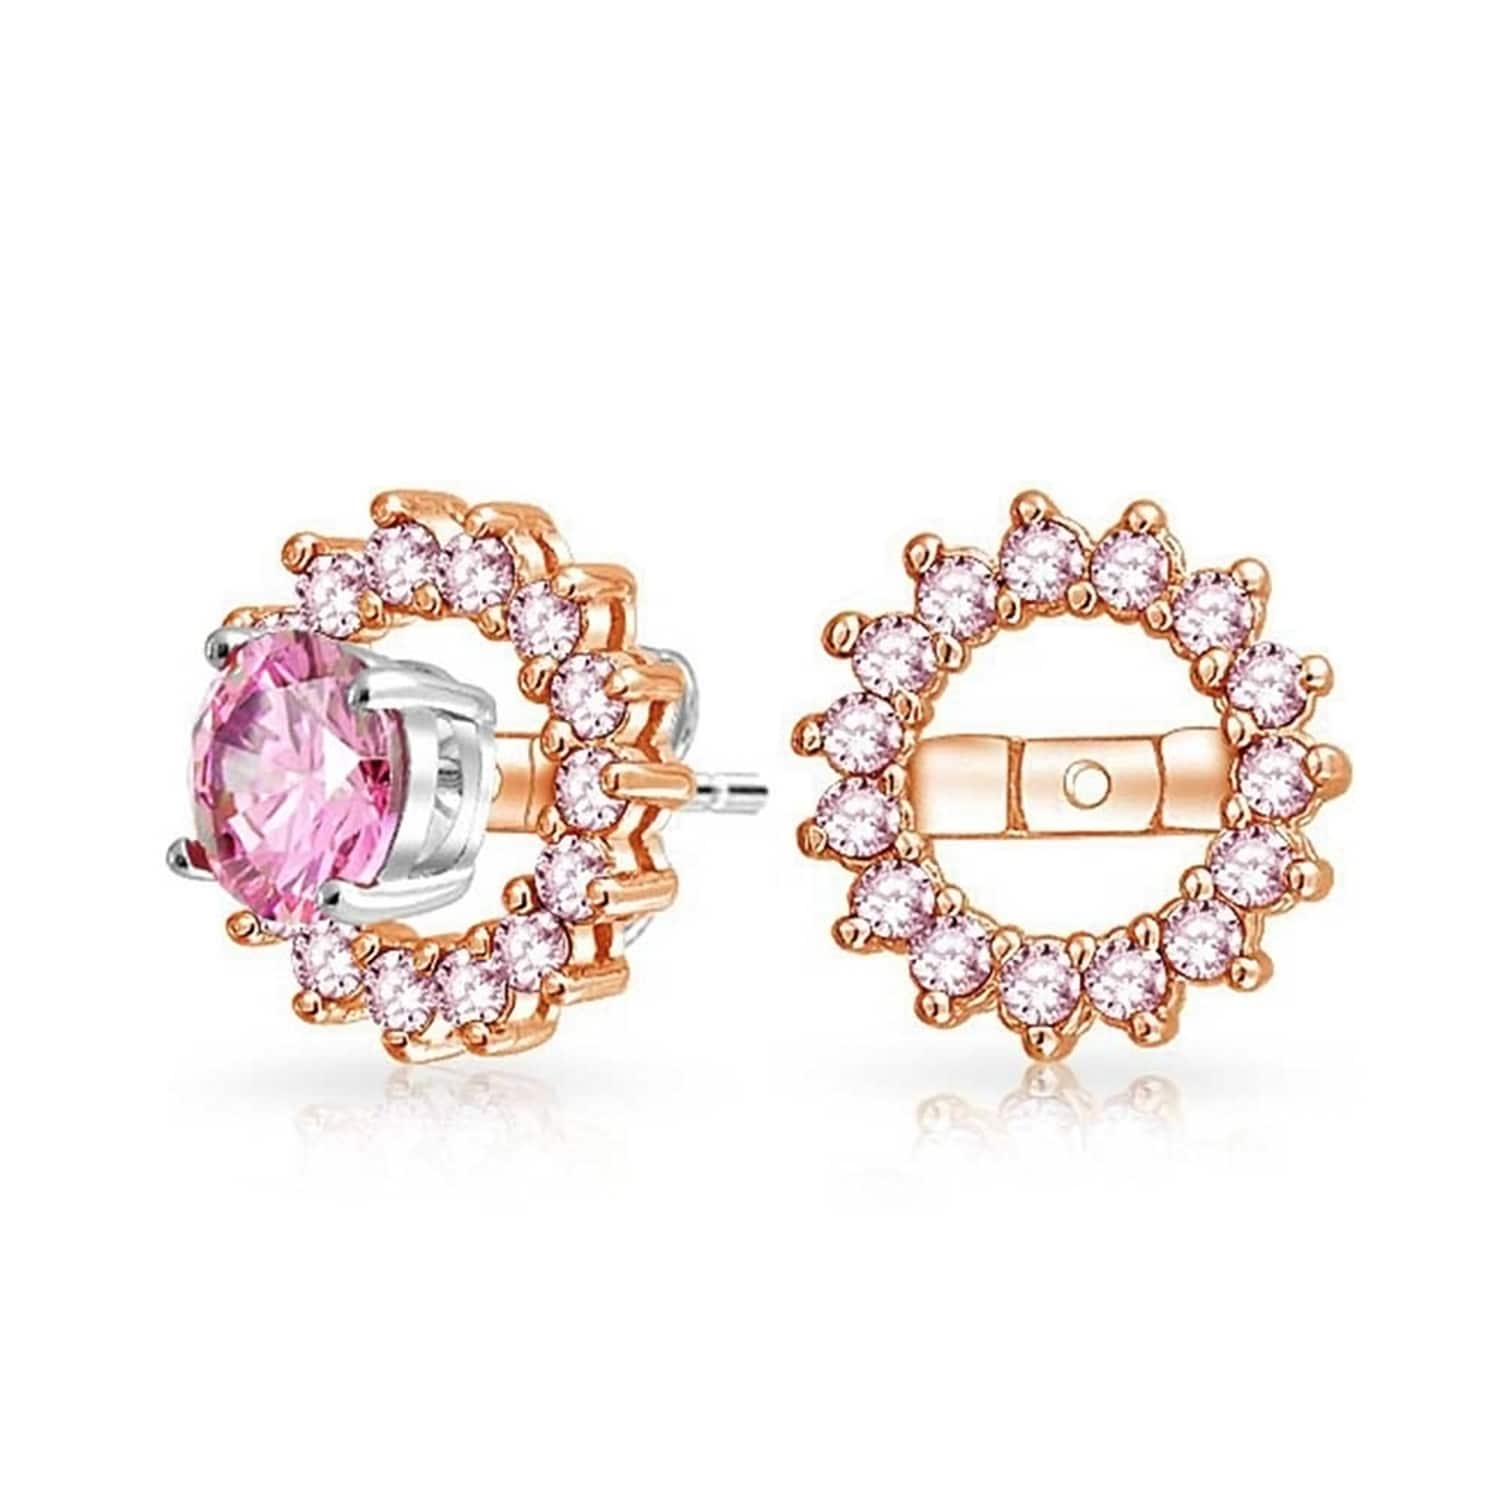 Cz Ear Jacket Stud Rose Gold Plated Sterling Earring Not Included Overstock 17989373